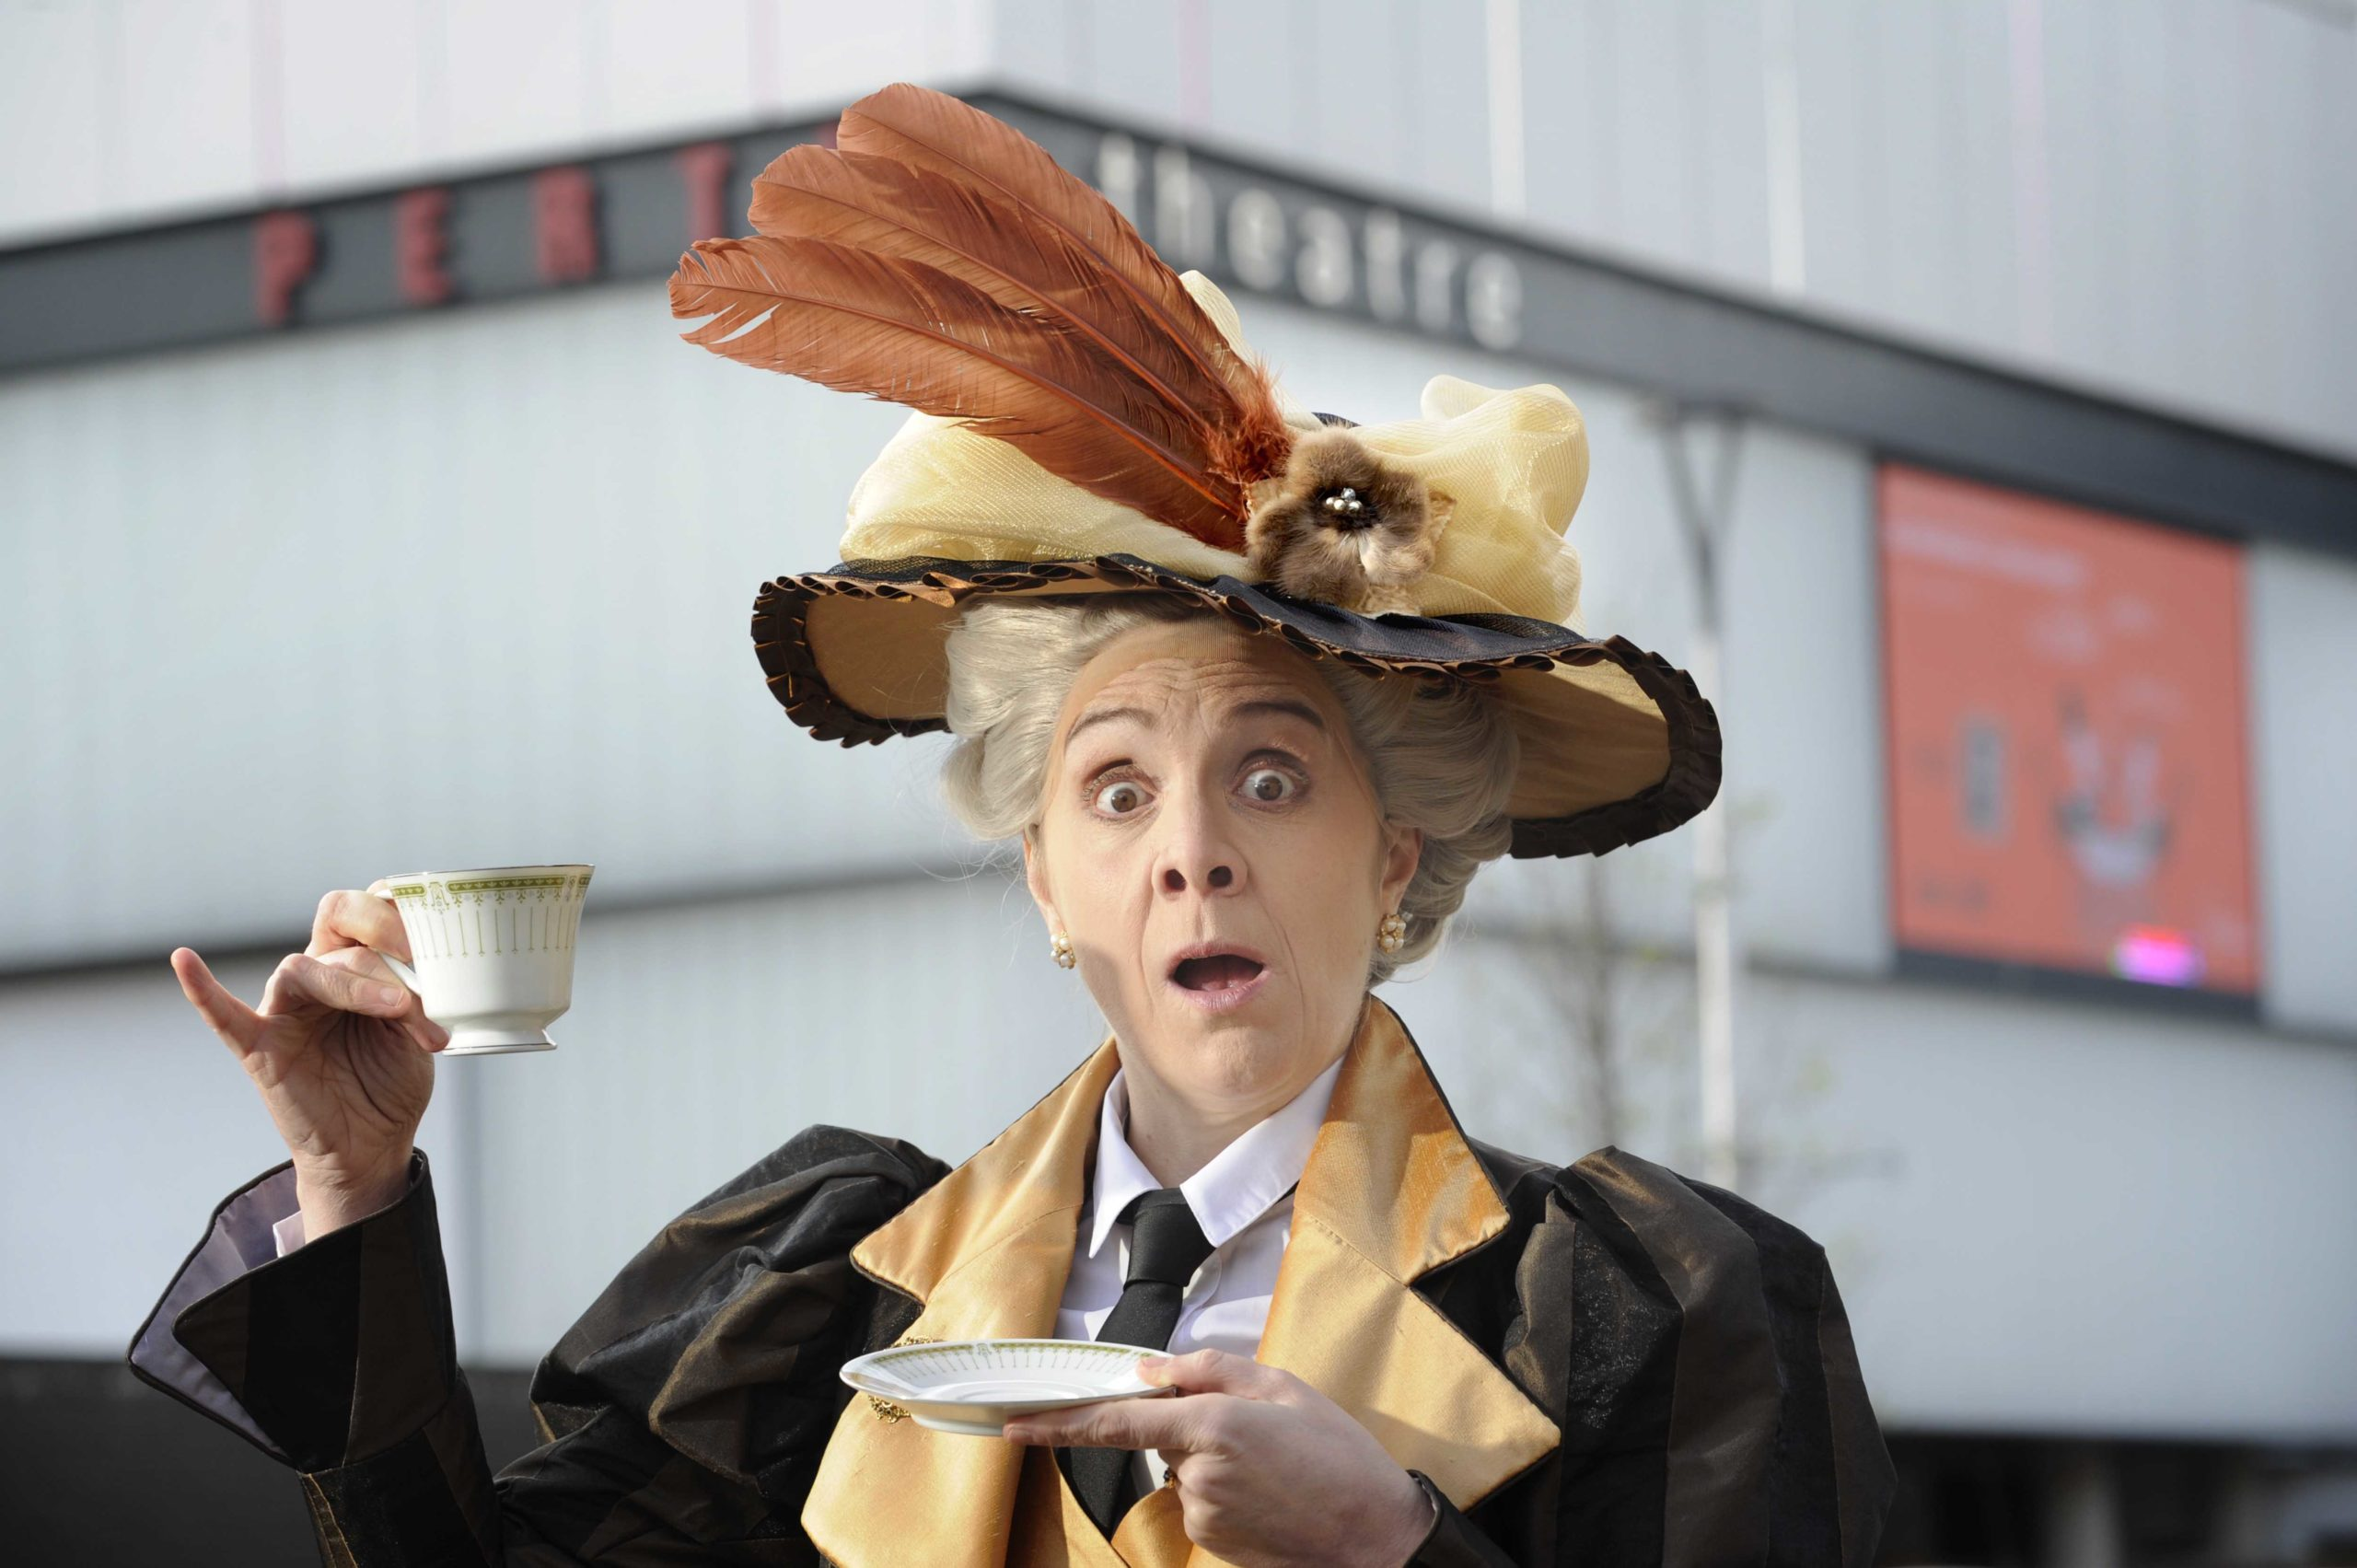 Karen Dunbar plays Lady Bracknell at Perth Theatre's new production of The Importance of Being Earnest.